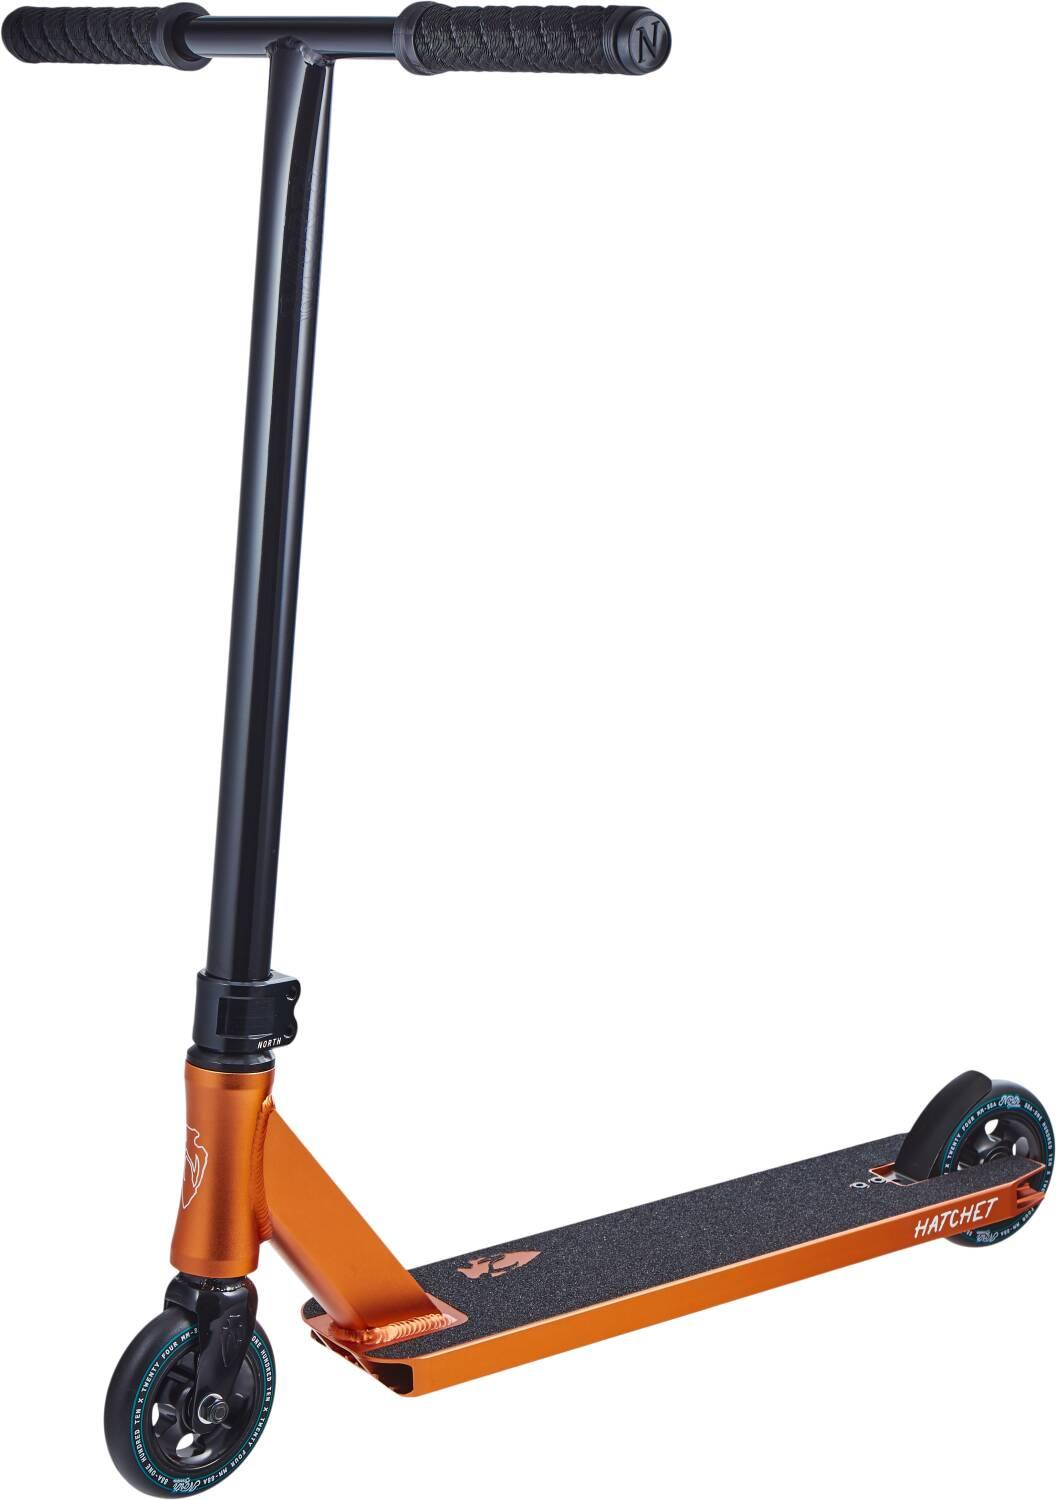 North Hatchet 2020 Pro Scooter